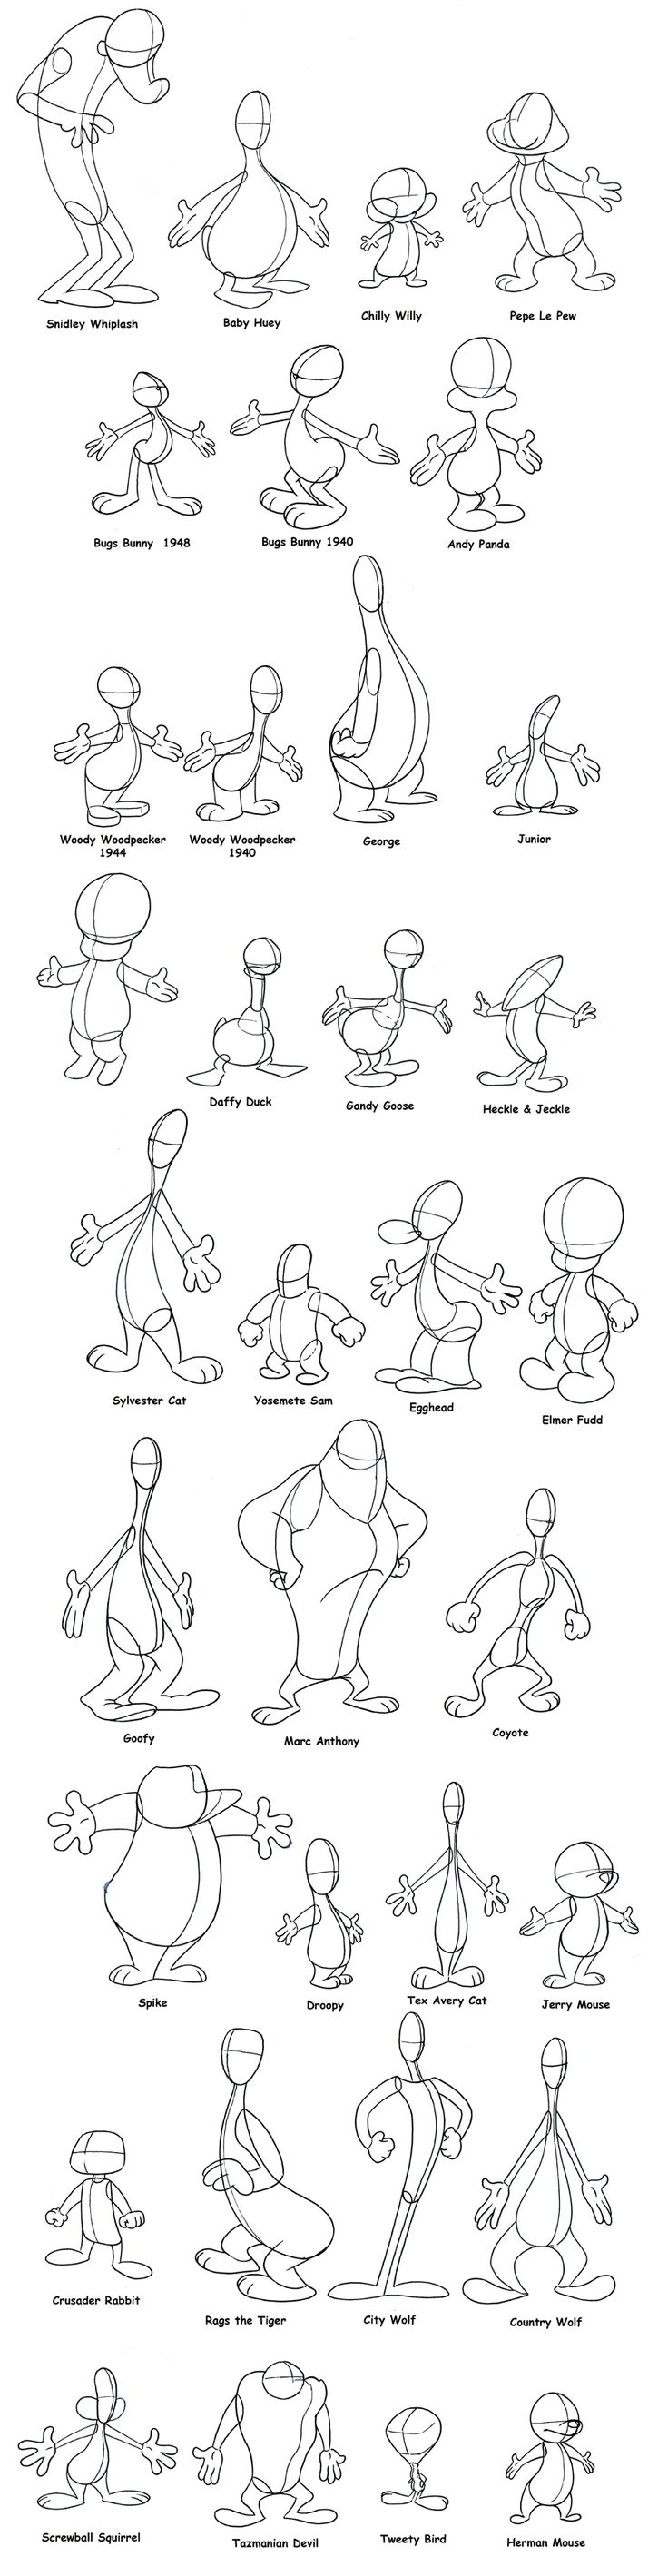 Characters basics | #drawing #tutorial #training #creative #paper #pen #design #character #basics